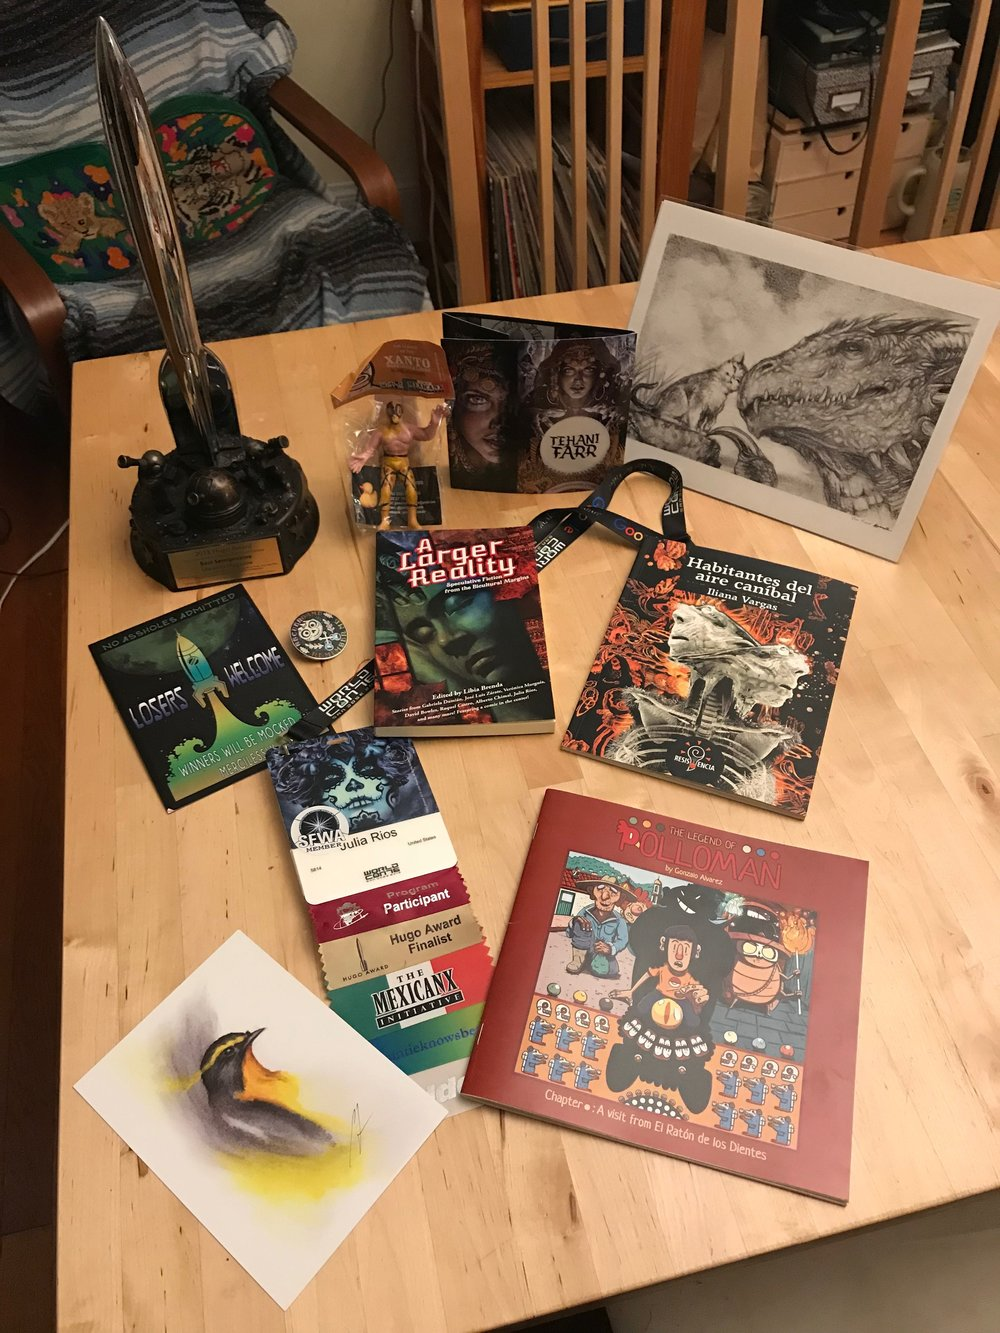 A haul of Mexicanx Initiative works and Worldcon 76 mementos Julia Rios cherishes. Back left to right: Hugo Award with base designed by Sara Felix and Vincent Villafranca, lucha libre figure from José Luis Zárate, art of Tehani Farr, kitty and drago print by DIanita Cerón. Middle left to right: Invitation to the Hugo Losers Party, *Coco* enamel pin, a copy of *A Larger Reality*, *Habitantes del aire canníbal* by Iliana Vargas. Bottom left to right: Bird art print by Cody Jimenez, Julia Rios's Worldcon 76 name badge with art by John Picacio and a Mexicanx Initiative ribbon, *The Legend of Polloman* by Gonzalo Alvarez. (Photo by Julia Rios)